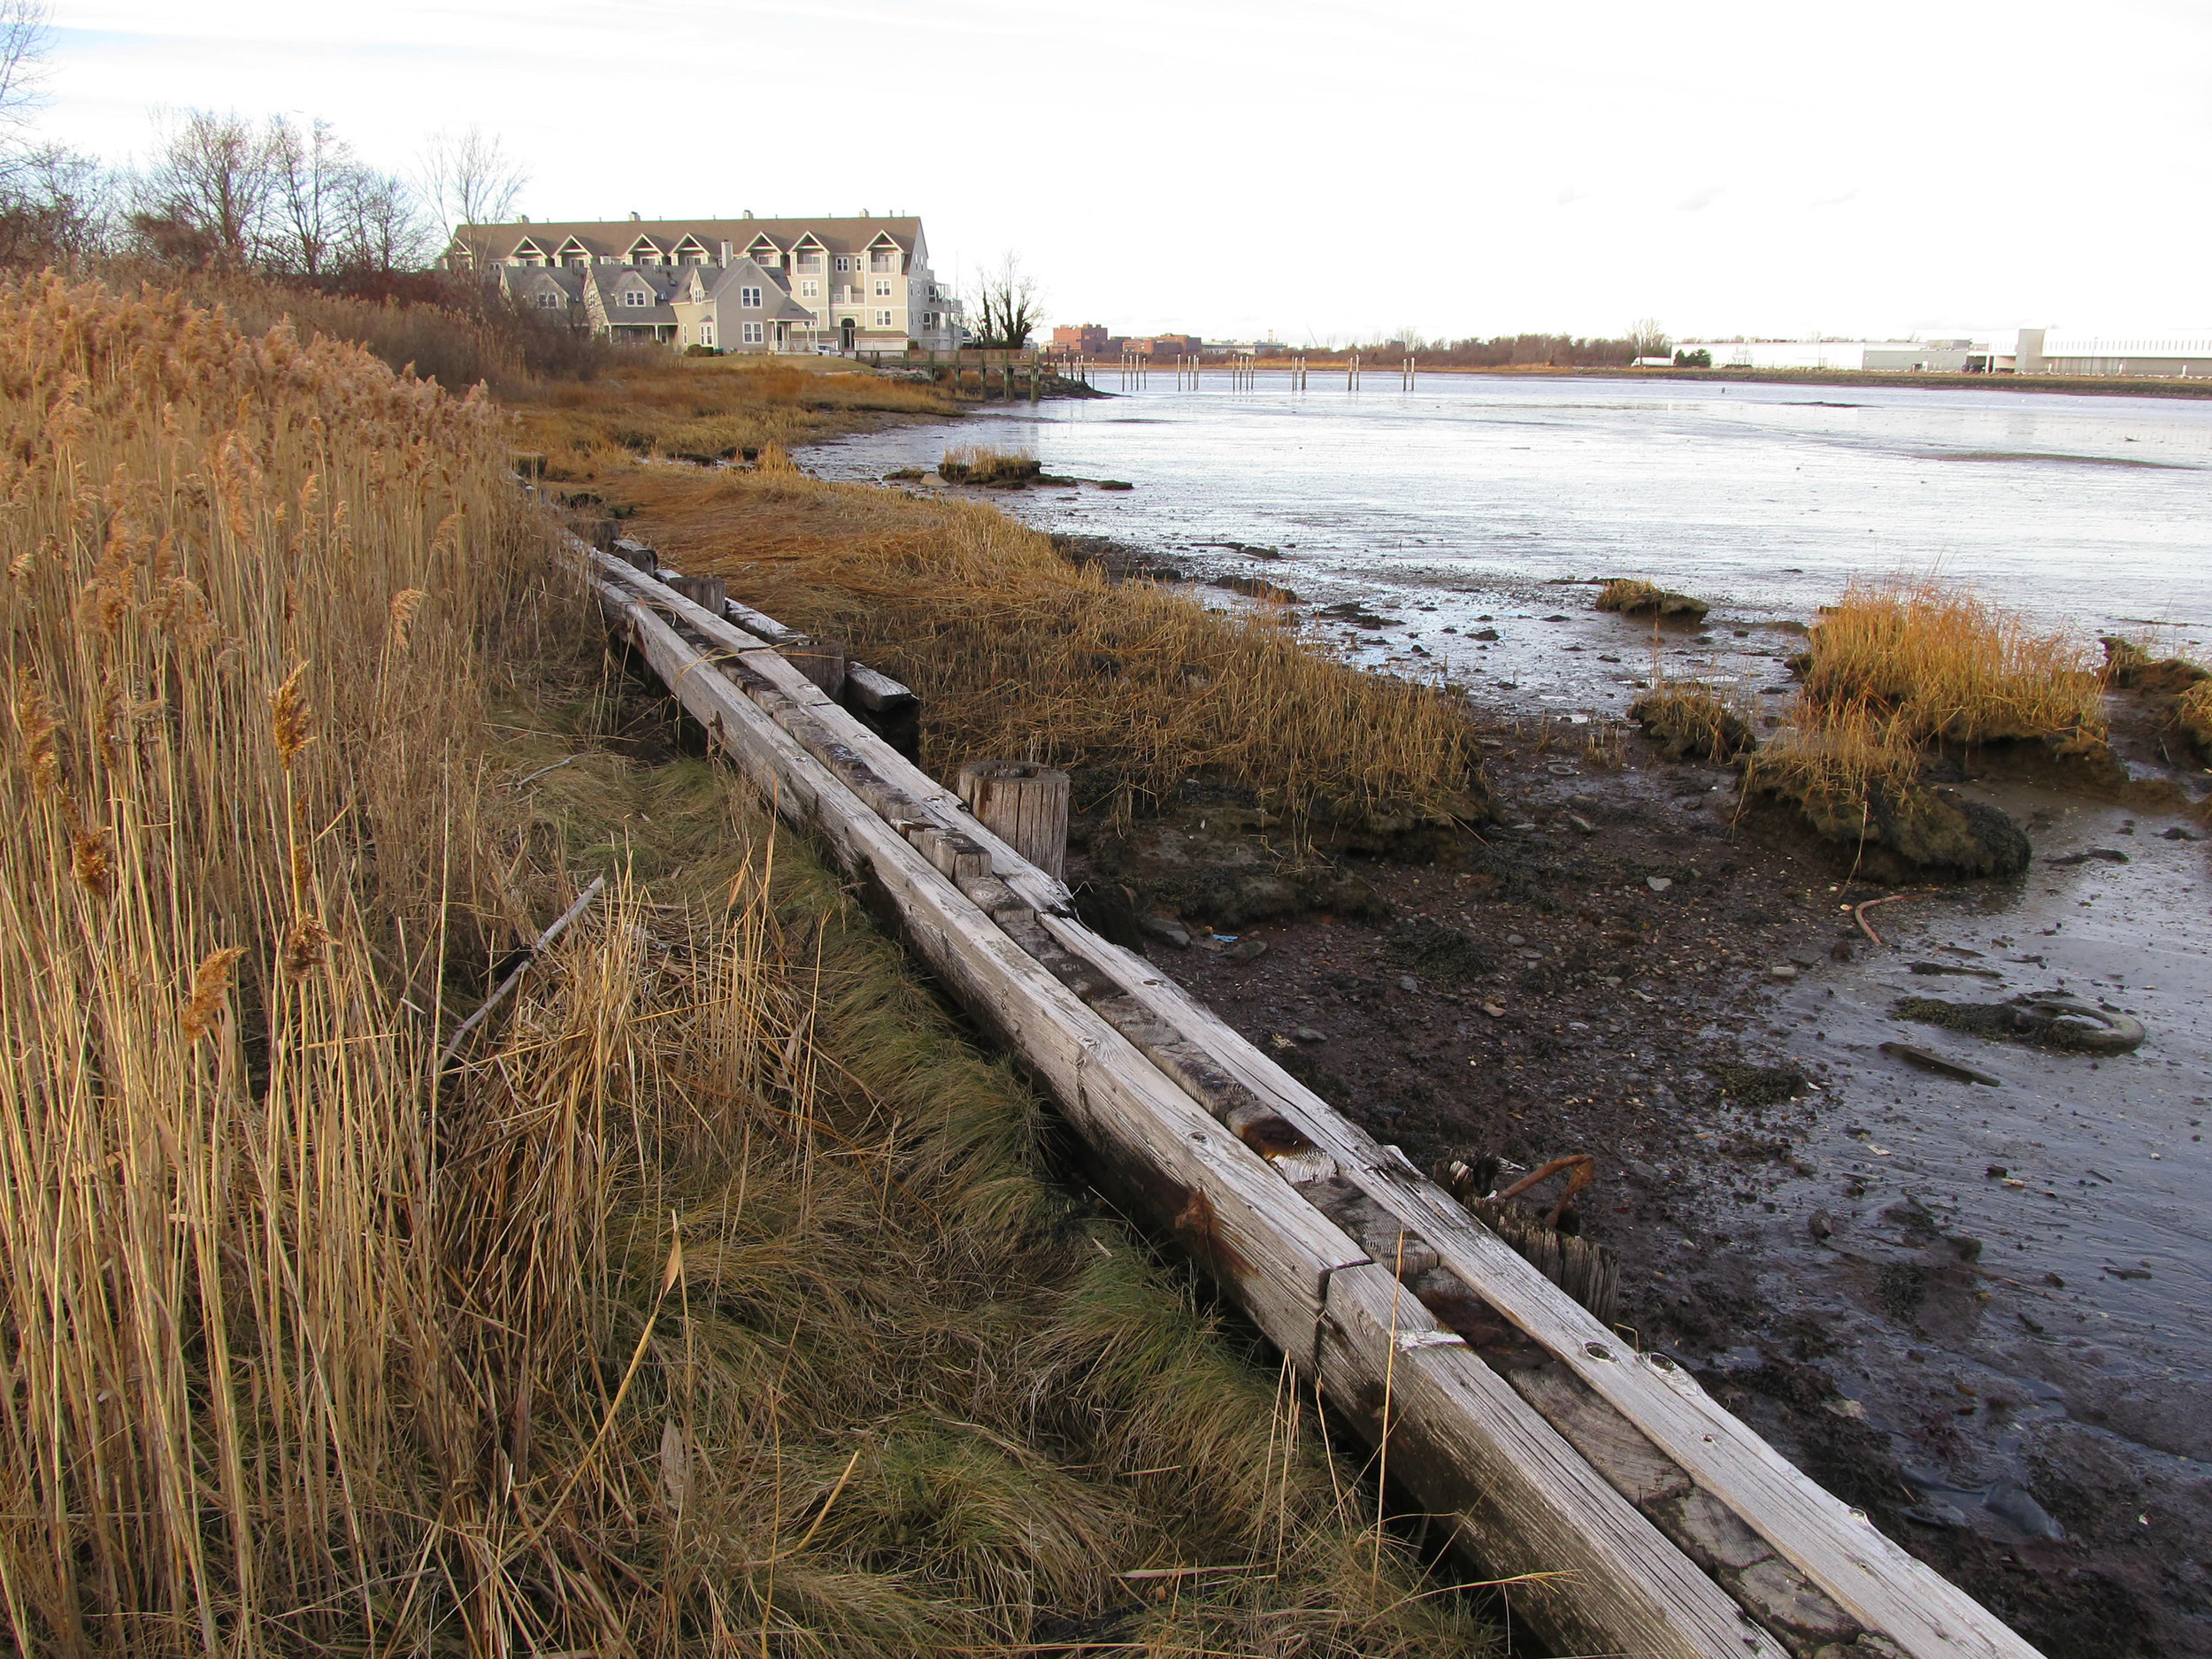 Removal of deteriorated timber bulkhead and invasive species